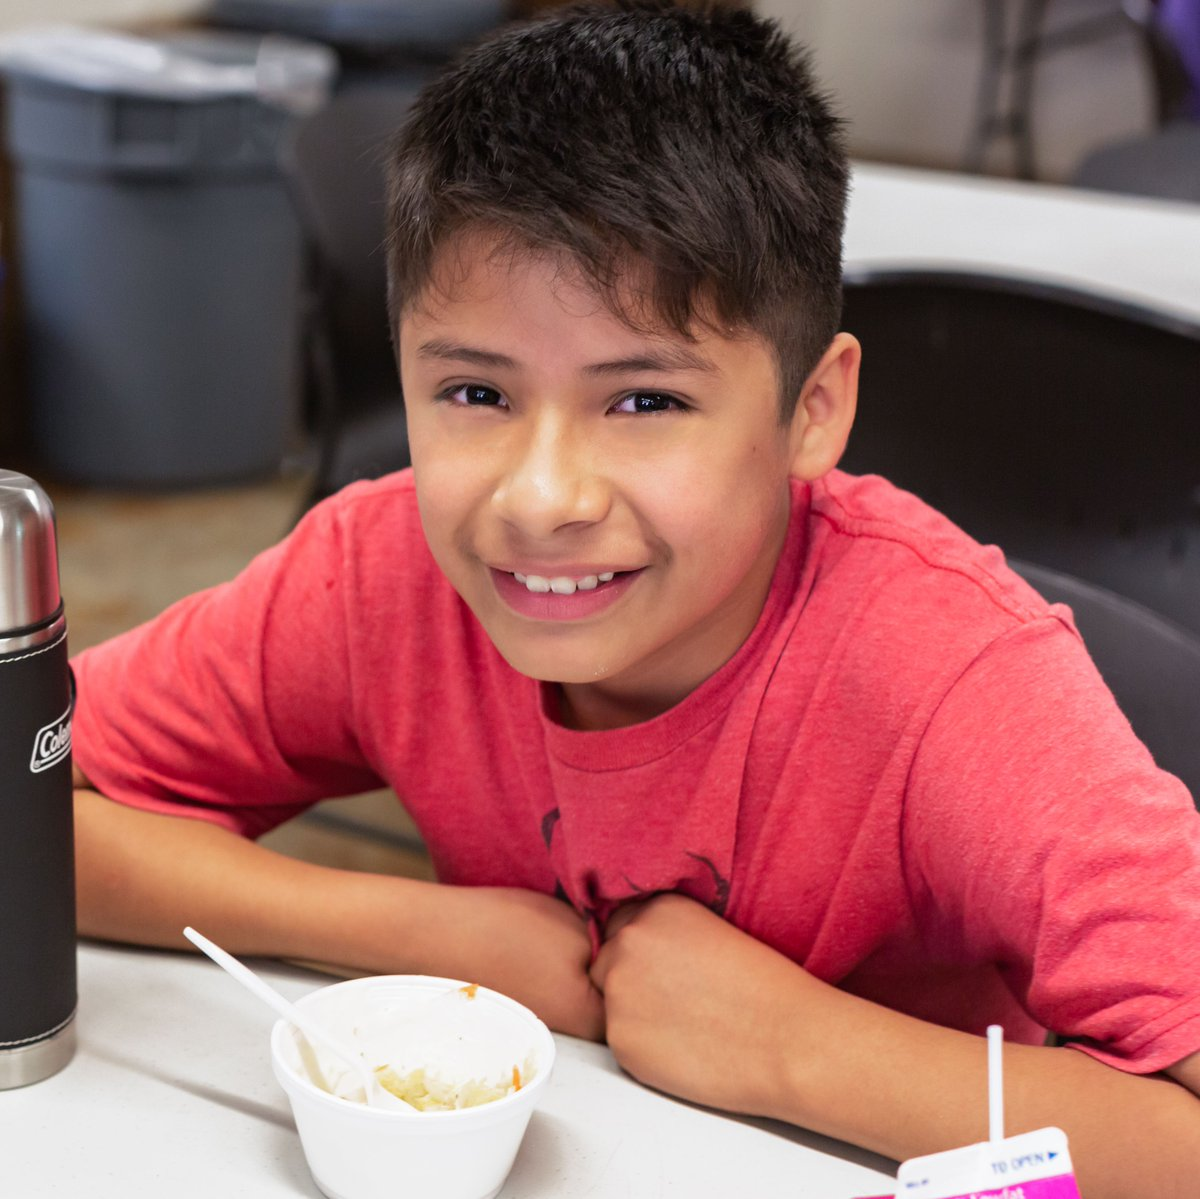 """""""I'd be skipping lunch if it weren't for this. This lunch is a miracle."""" -Oscar, 10  1 in 4 children could face hunger this year, including children relying on meals at school. Read how we are feeding kids, and how you can help. #NationalSchoolLunchWeek https://t.co/lh1KNiG2Ml https://t.co/k6oHLM9wUE"""